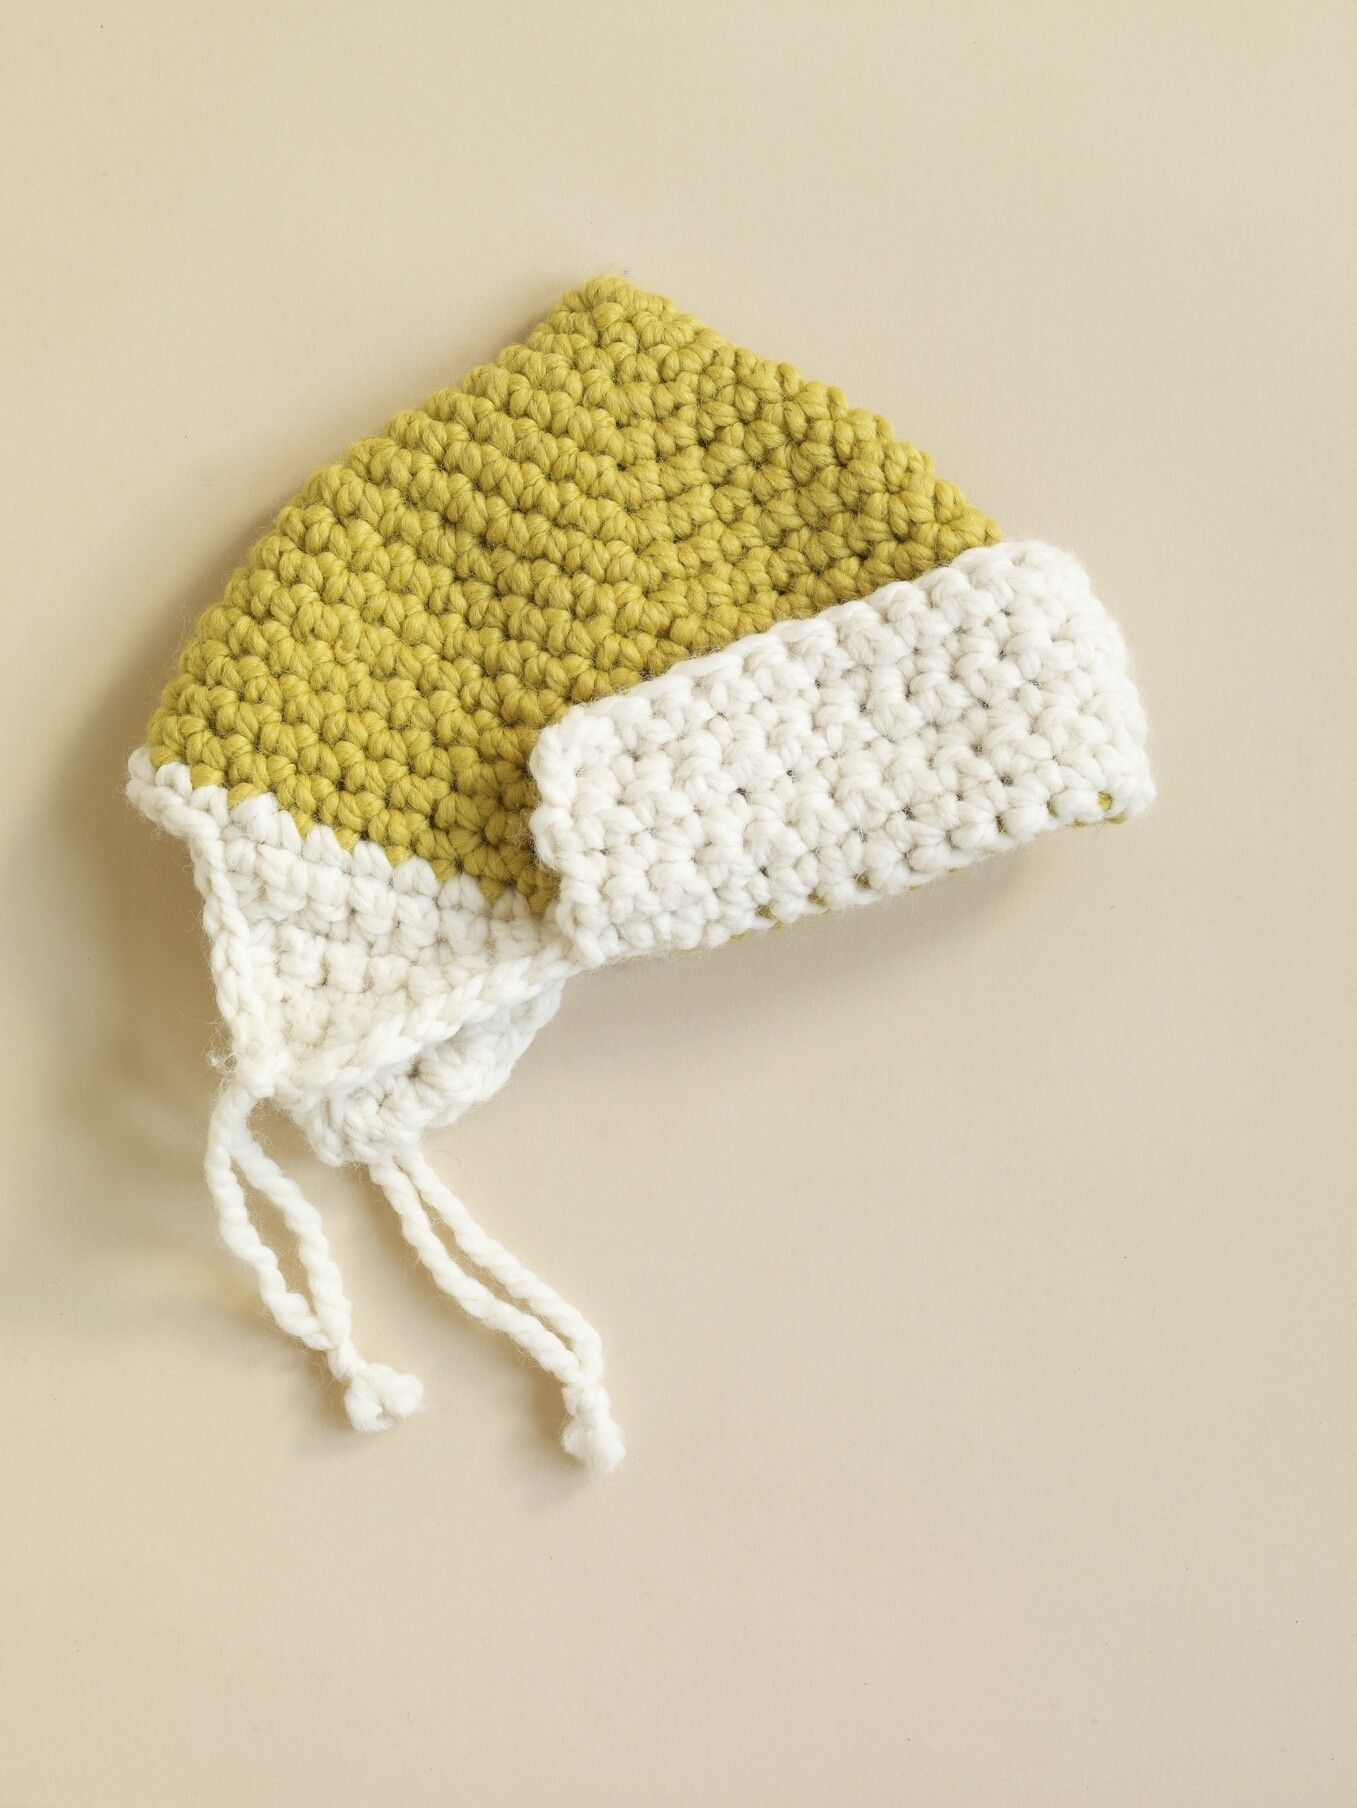 Mini Trick Hat 2 Pattern (Crochet) | Crochet | Pinterest